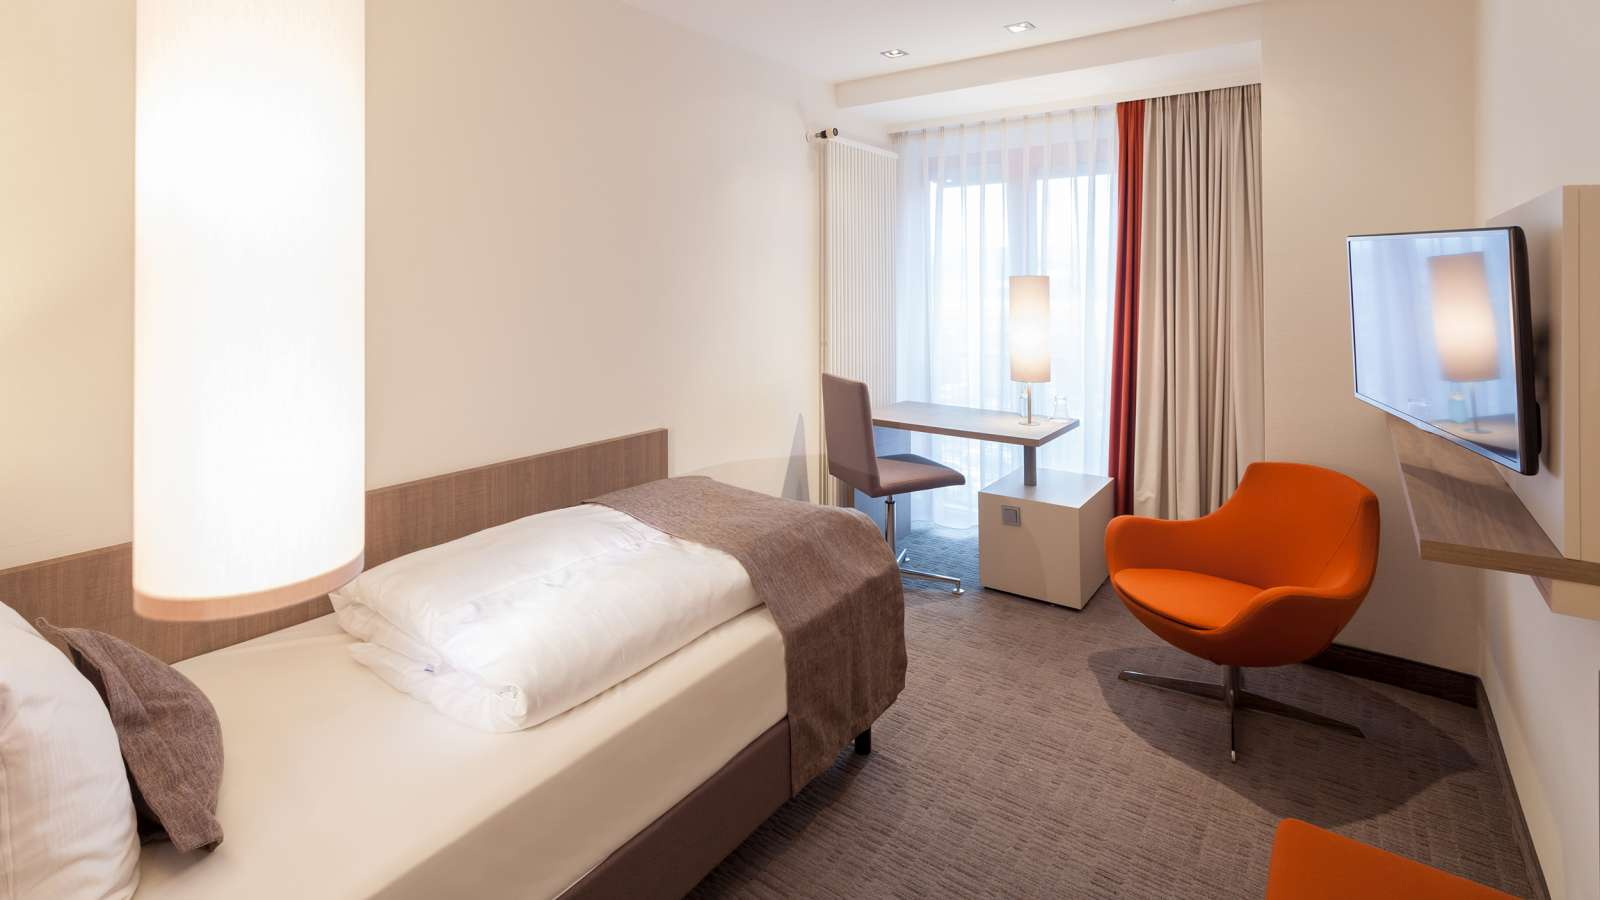 A spacious single room at Centro Hotel Kommerz